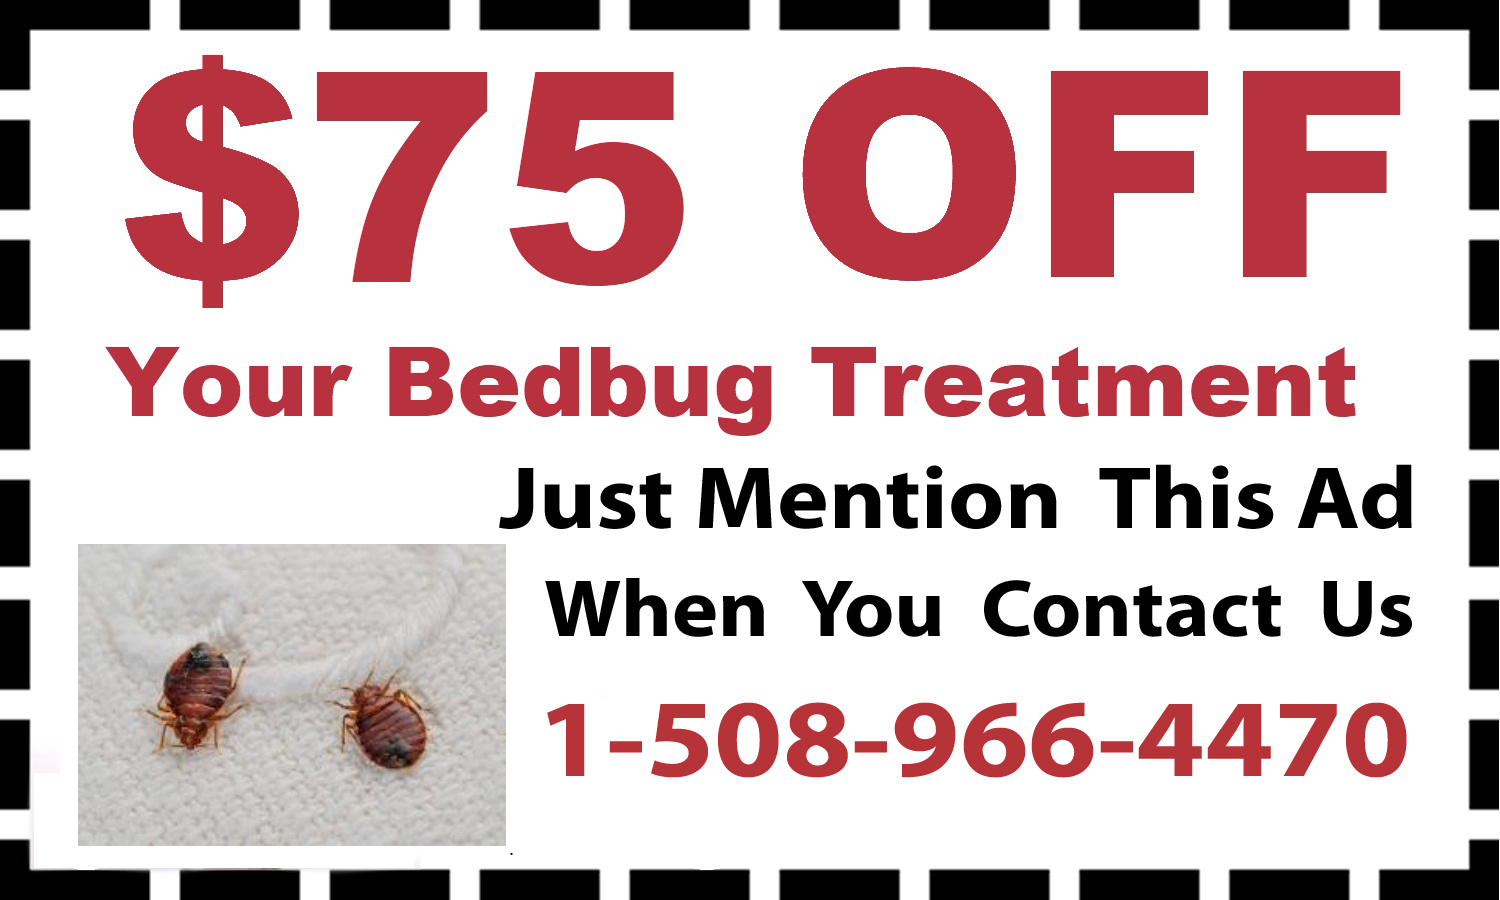 BedBug Treatment Hopedale, MA